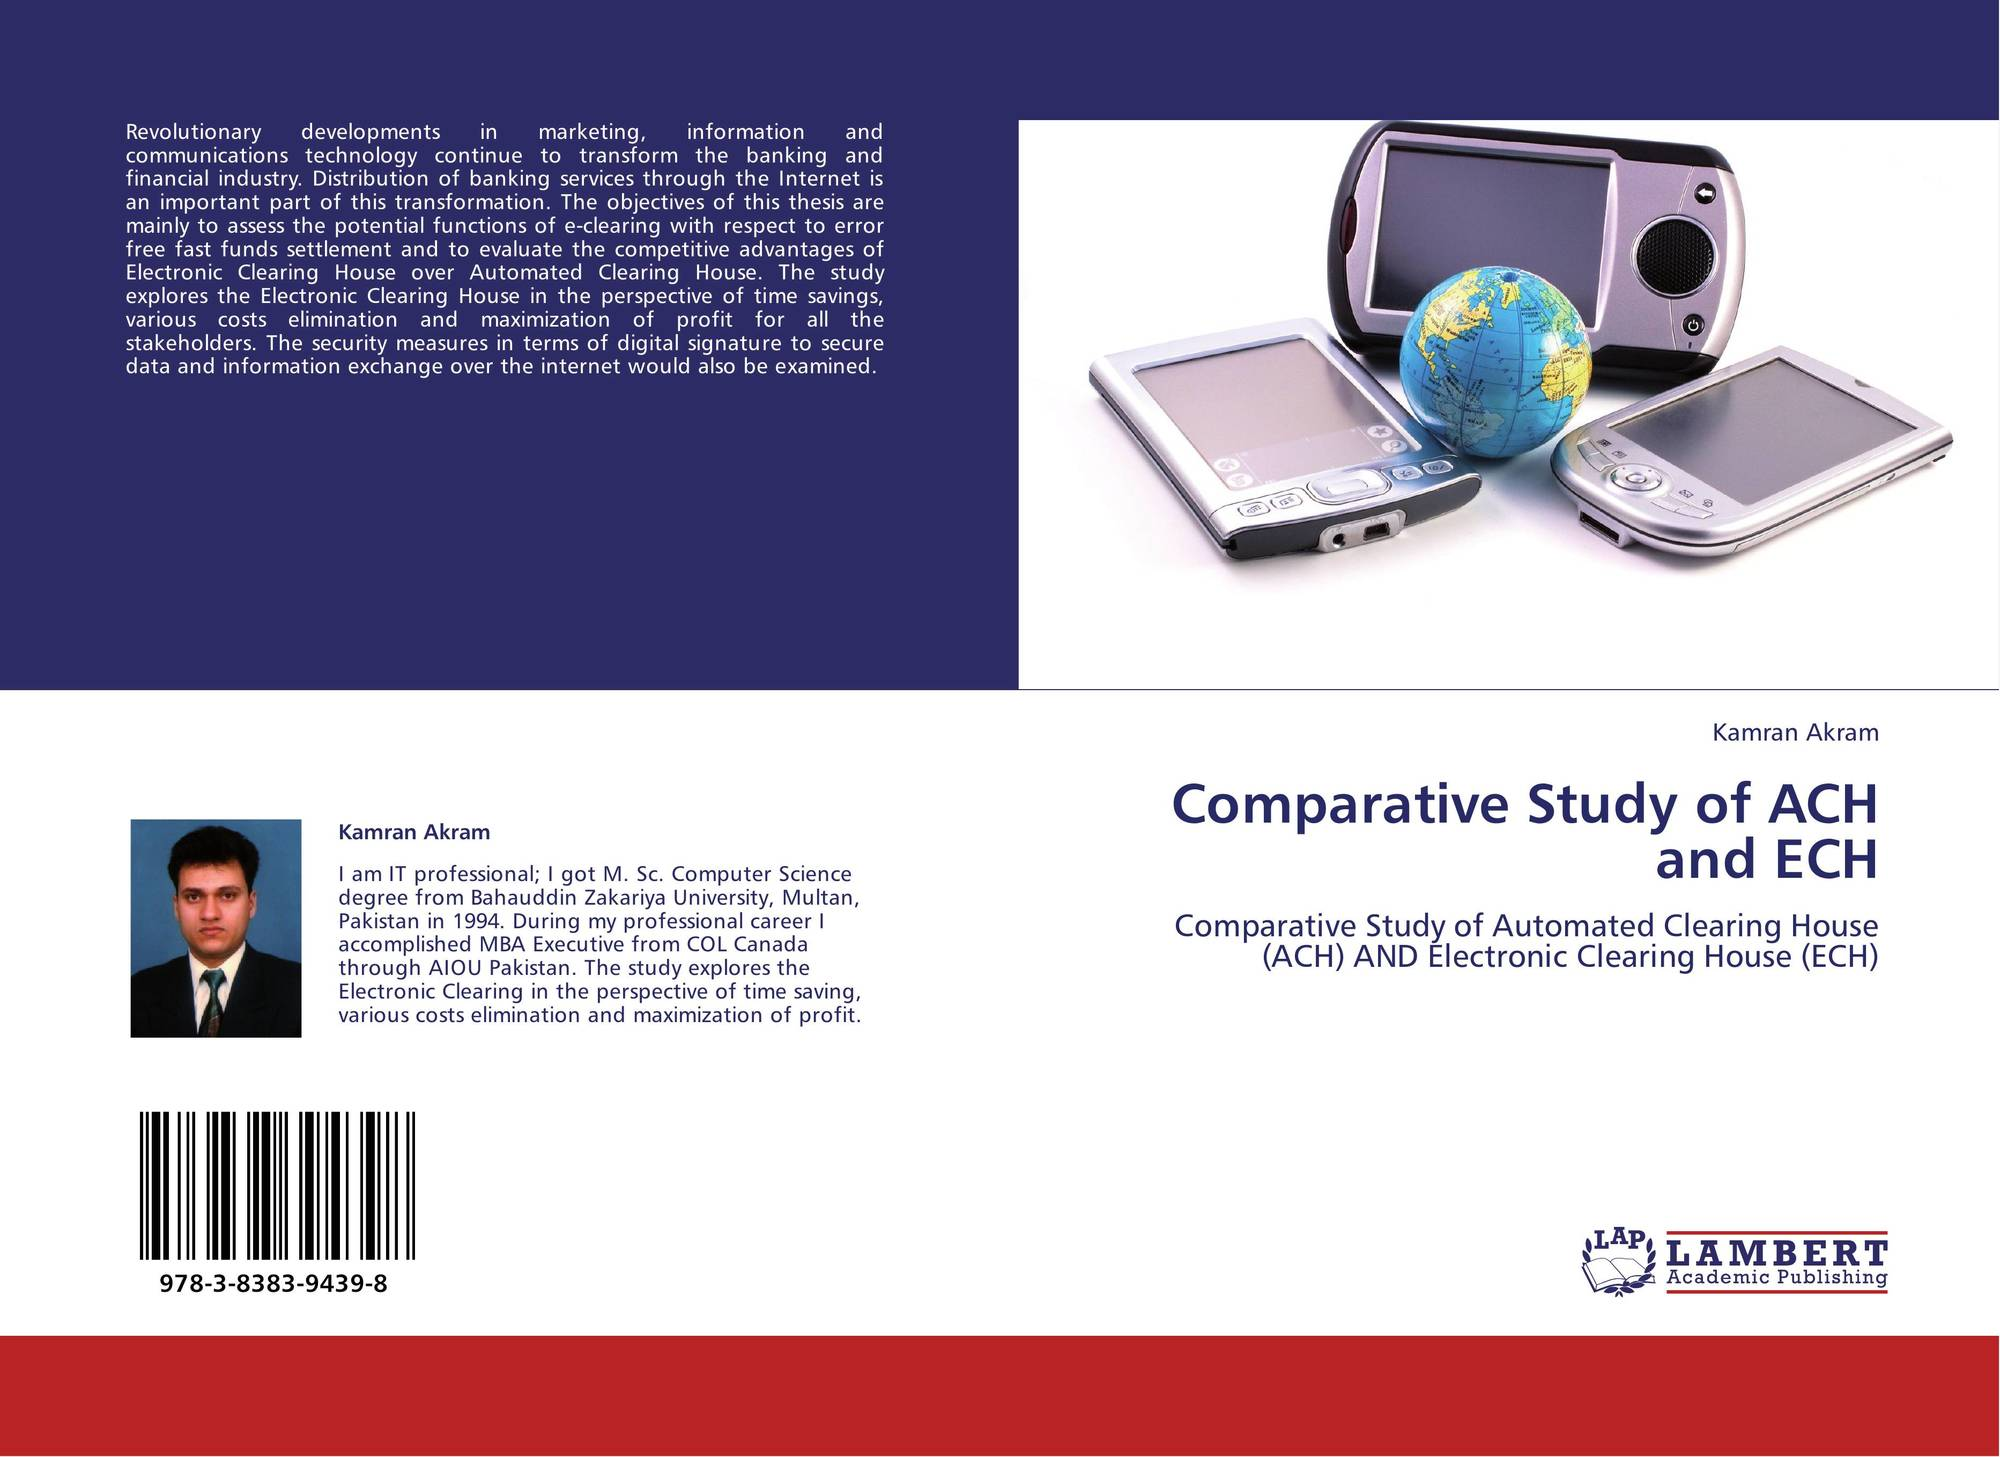 Comparative Study of ACH and ECH, 978-3-8383-9439-8, 3838394399